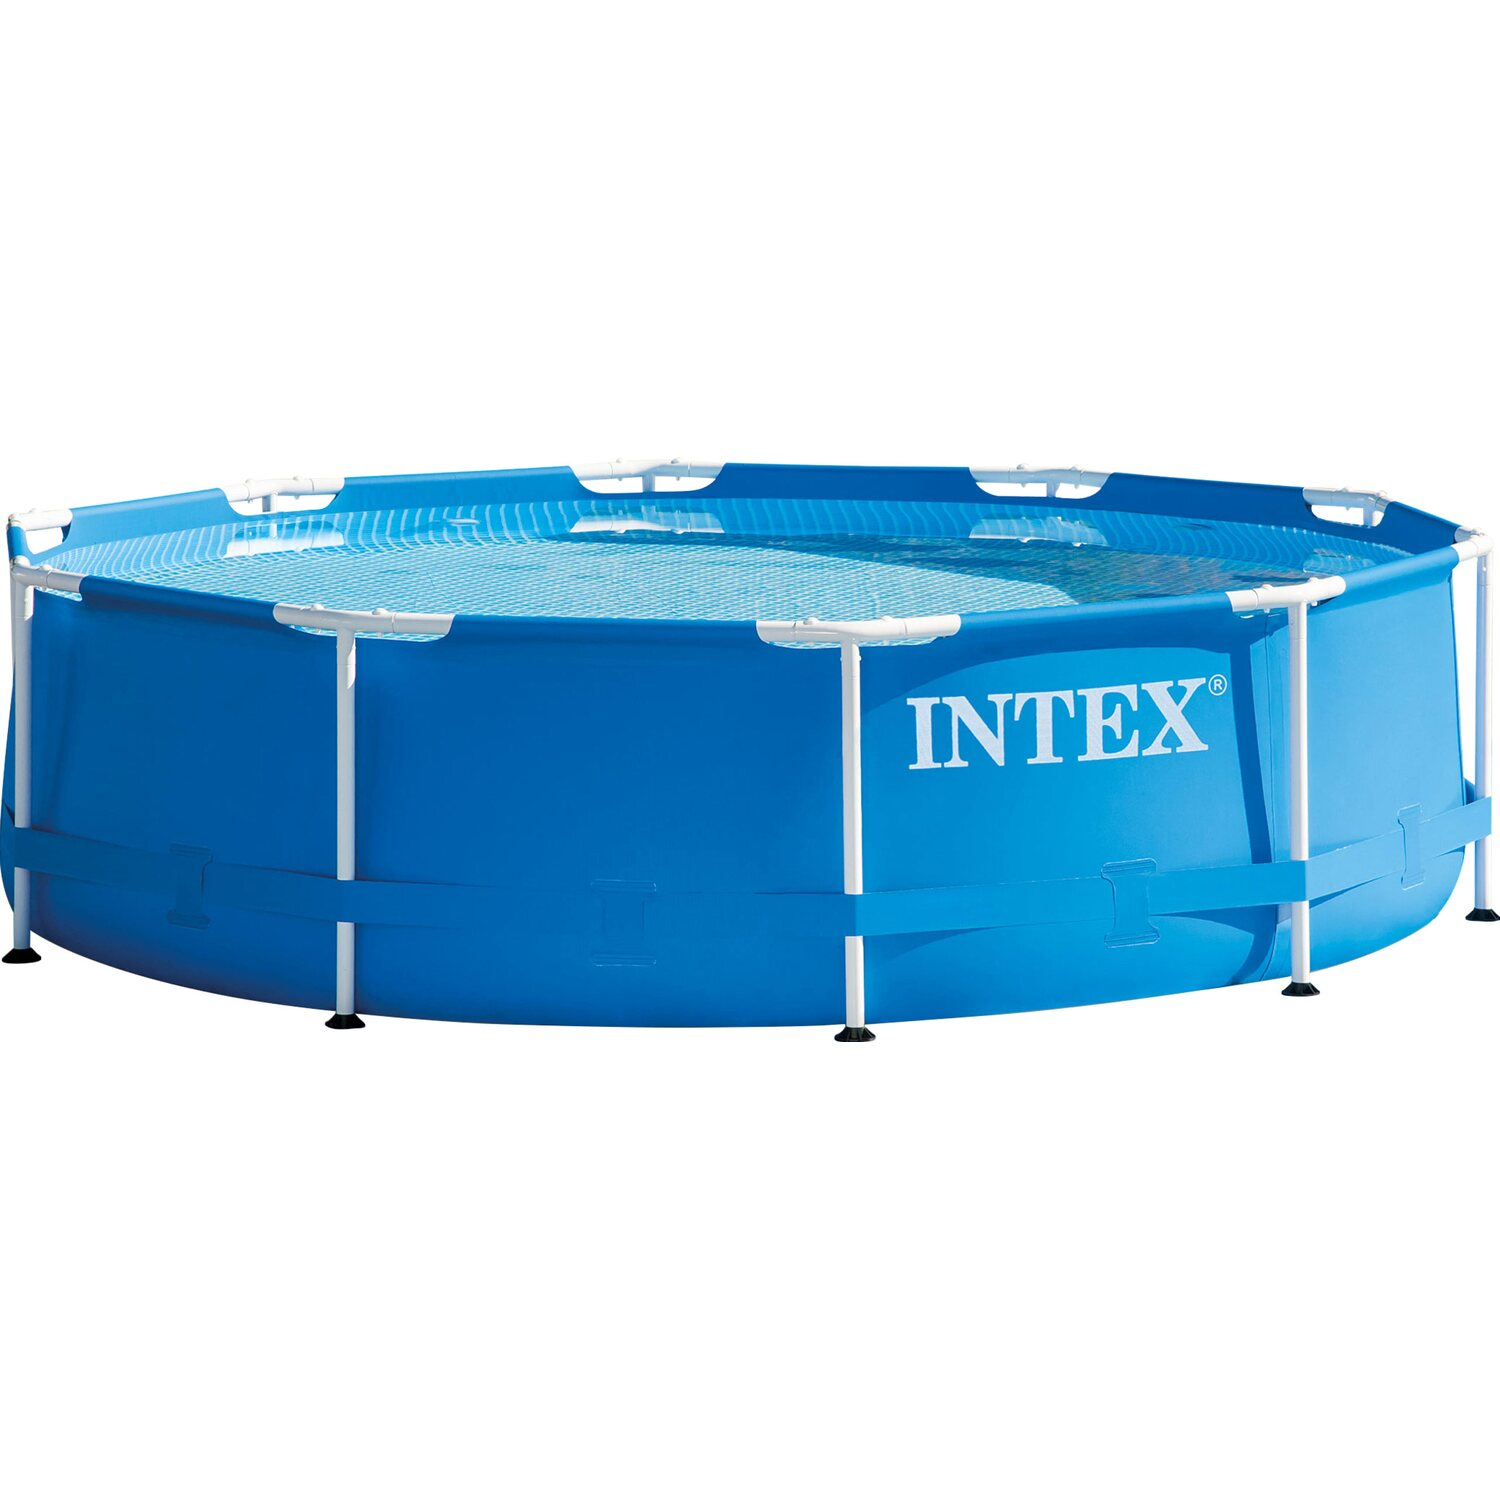 Ber hmt metallrahmen ber den boden pools bilder for Hagebau intex pool